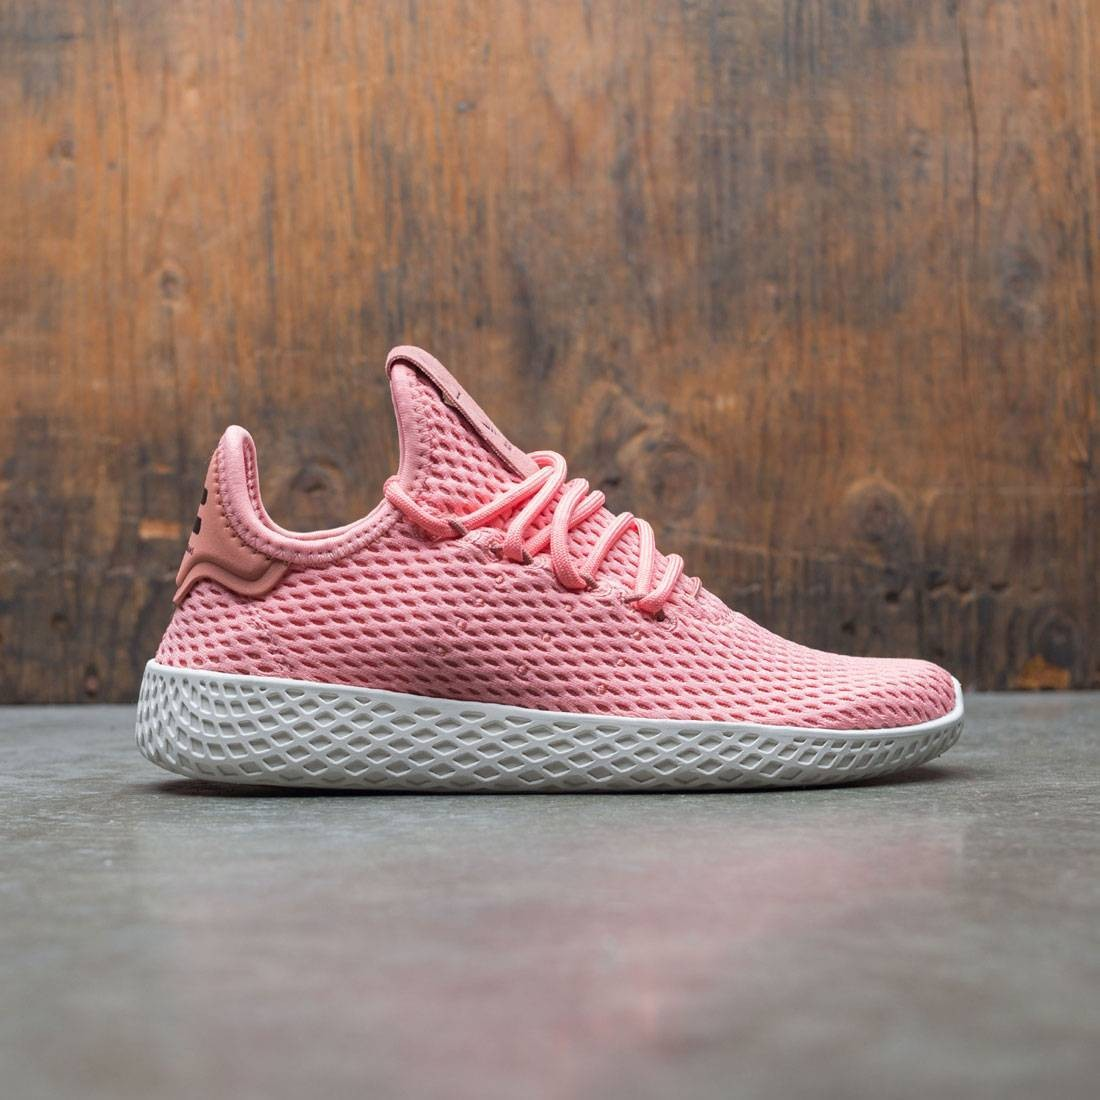 Adidas x Pharrell Williams Big Kids Tennis HU J (pink / tactile rose / footwear white)